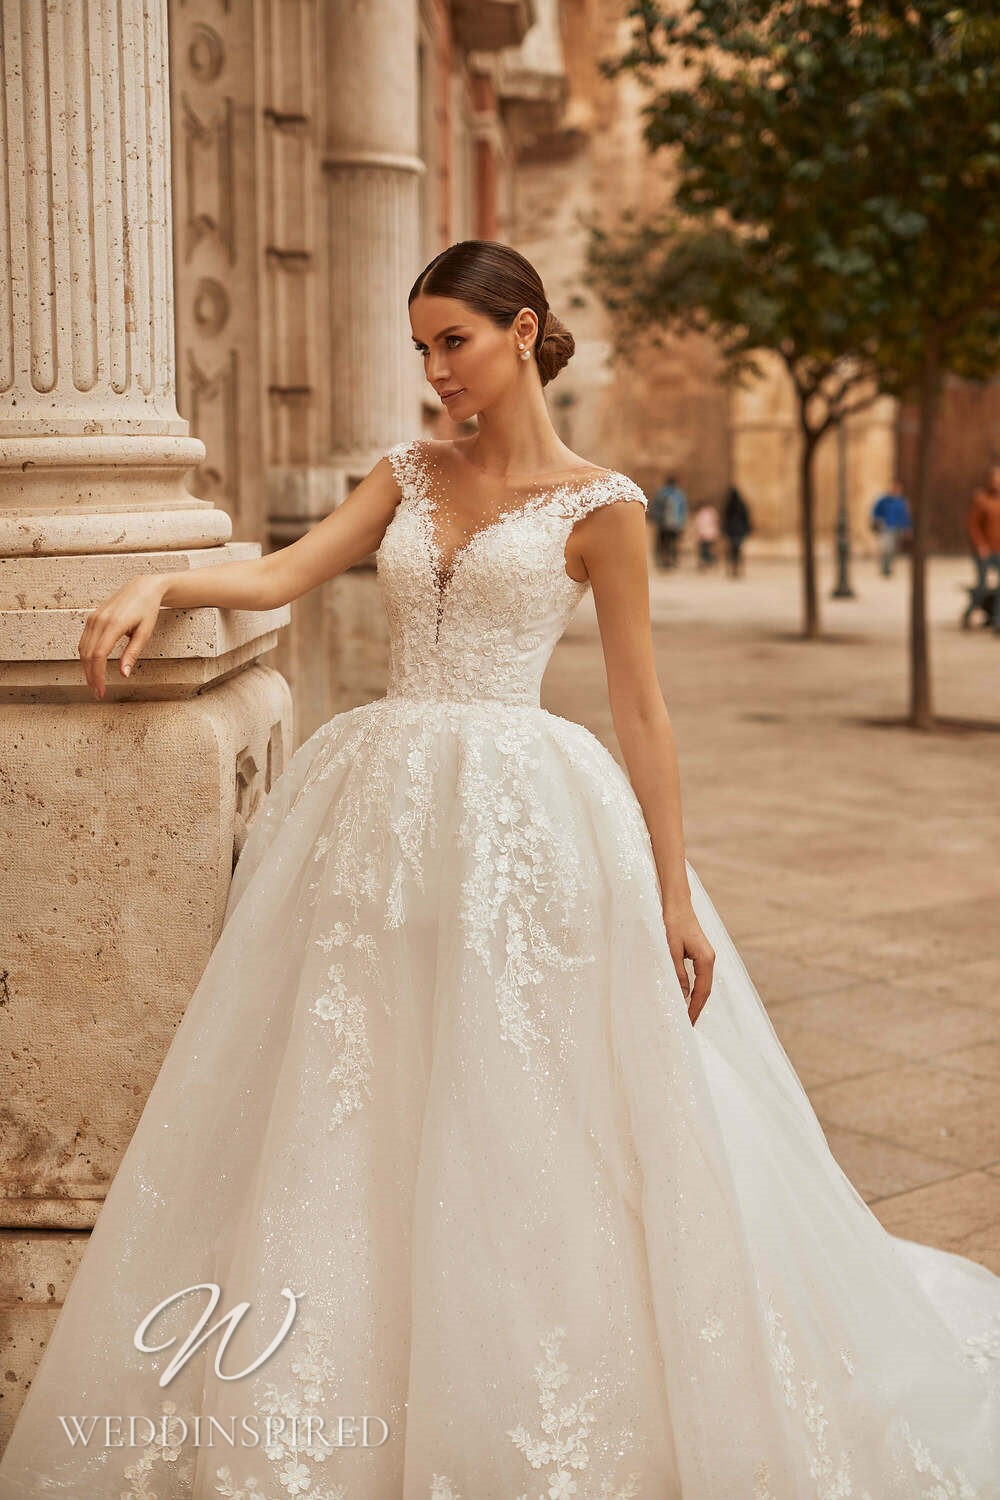 A Royal by Naviblue 2021 tulle and lace princess wedding dress